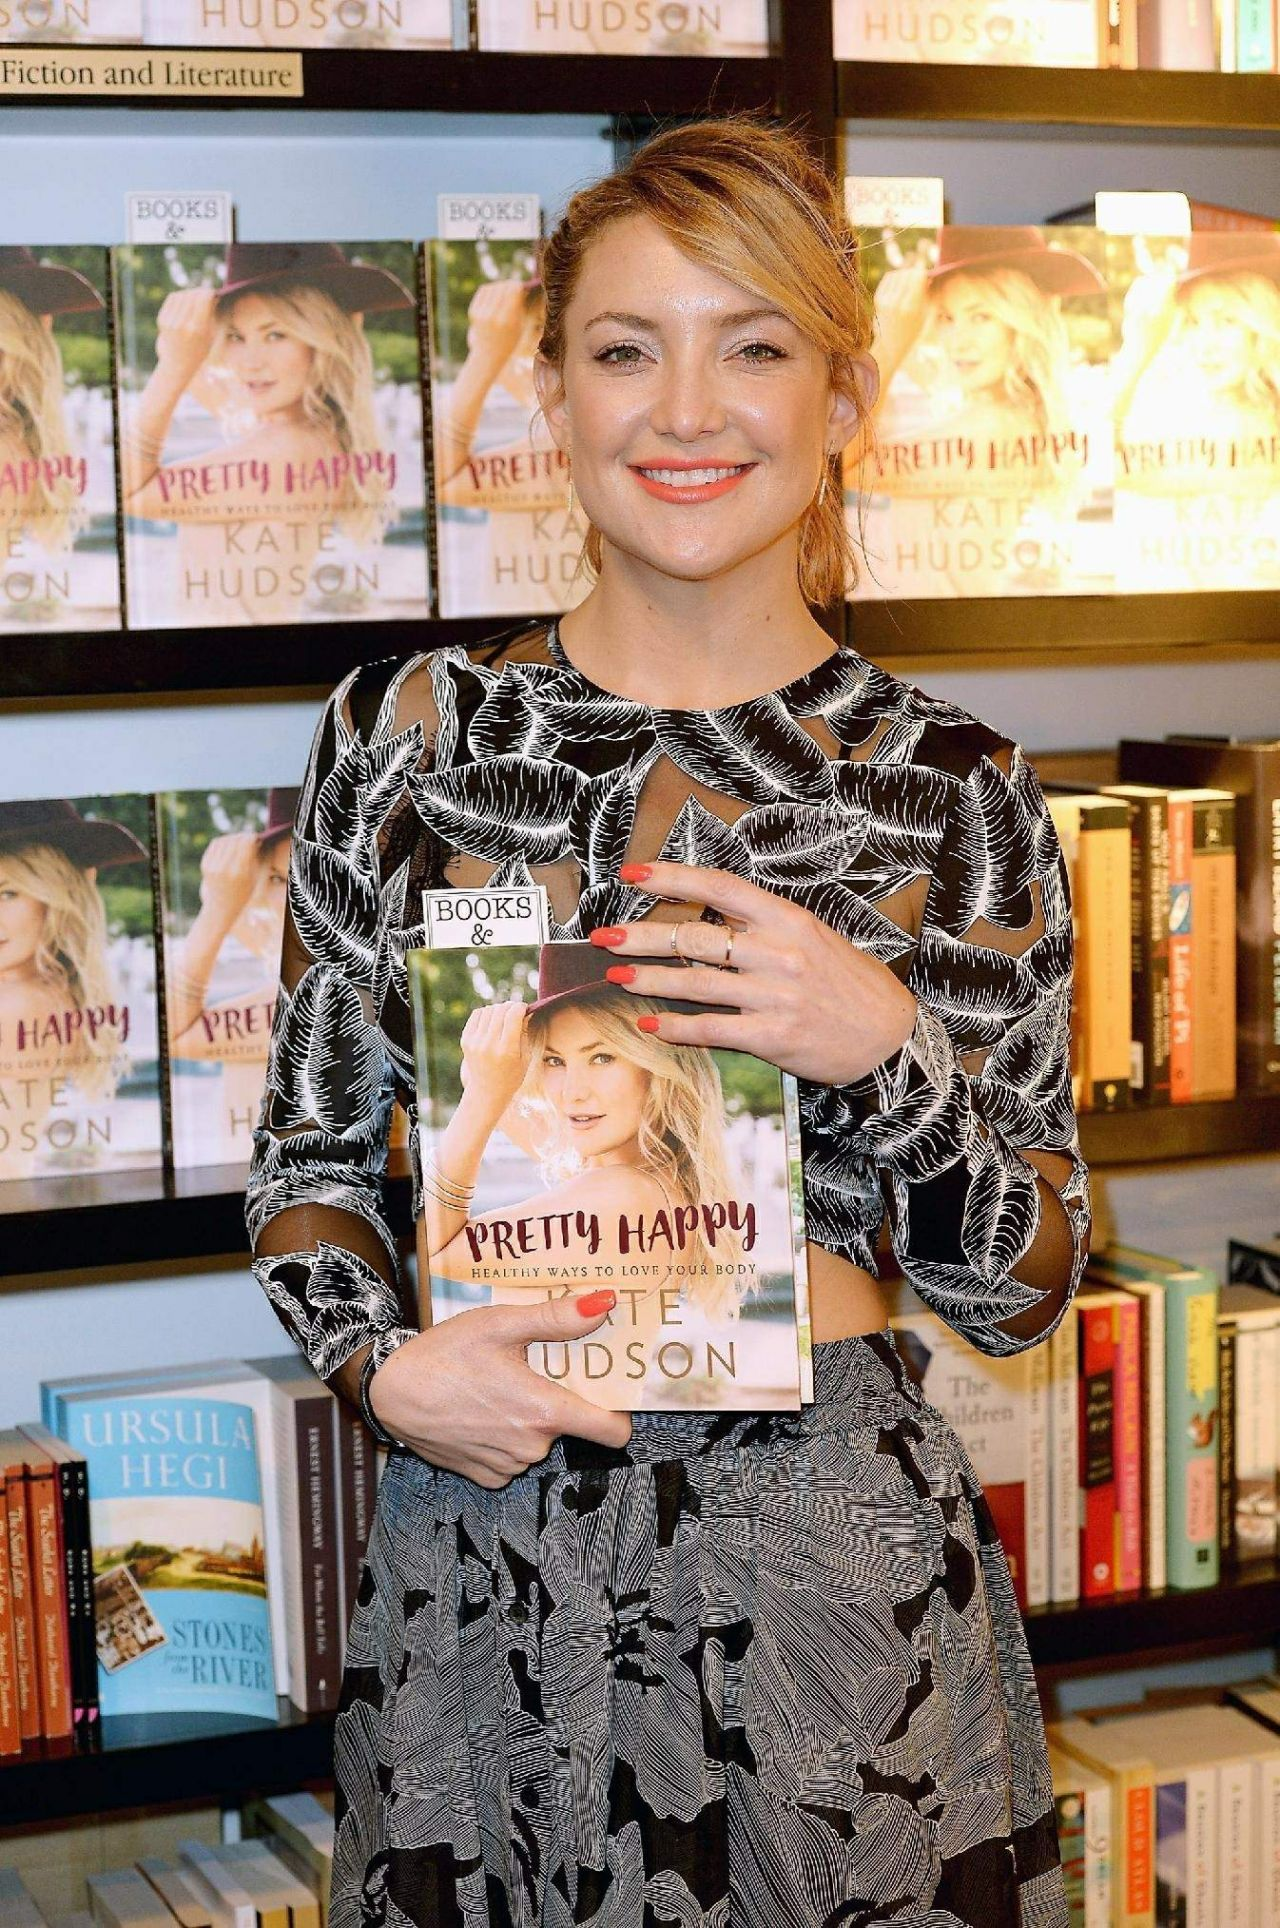 kate-hudson-pretty-happy-healthy-ways-to-love-your-body-book-signing-bal-harbour-february-2016-1